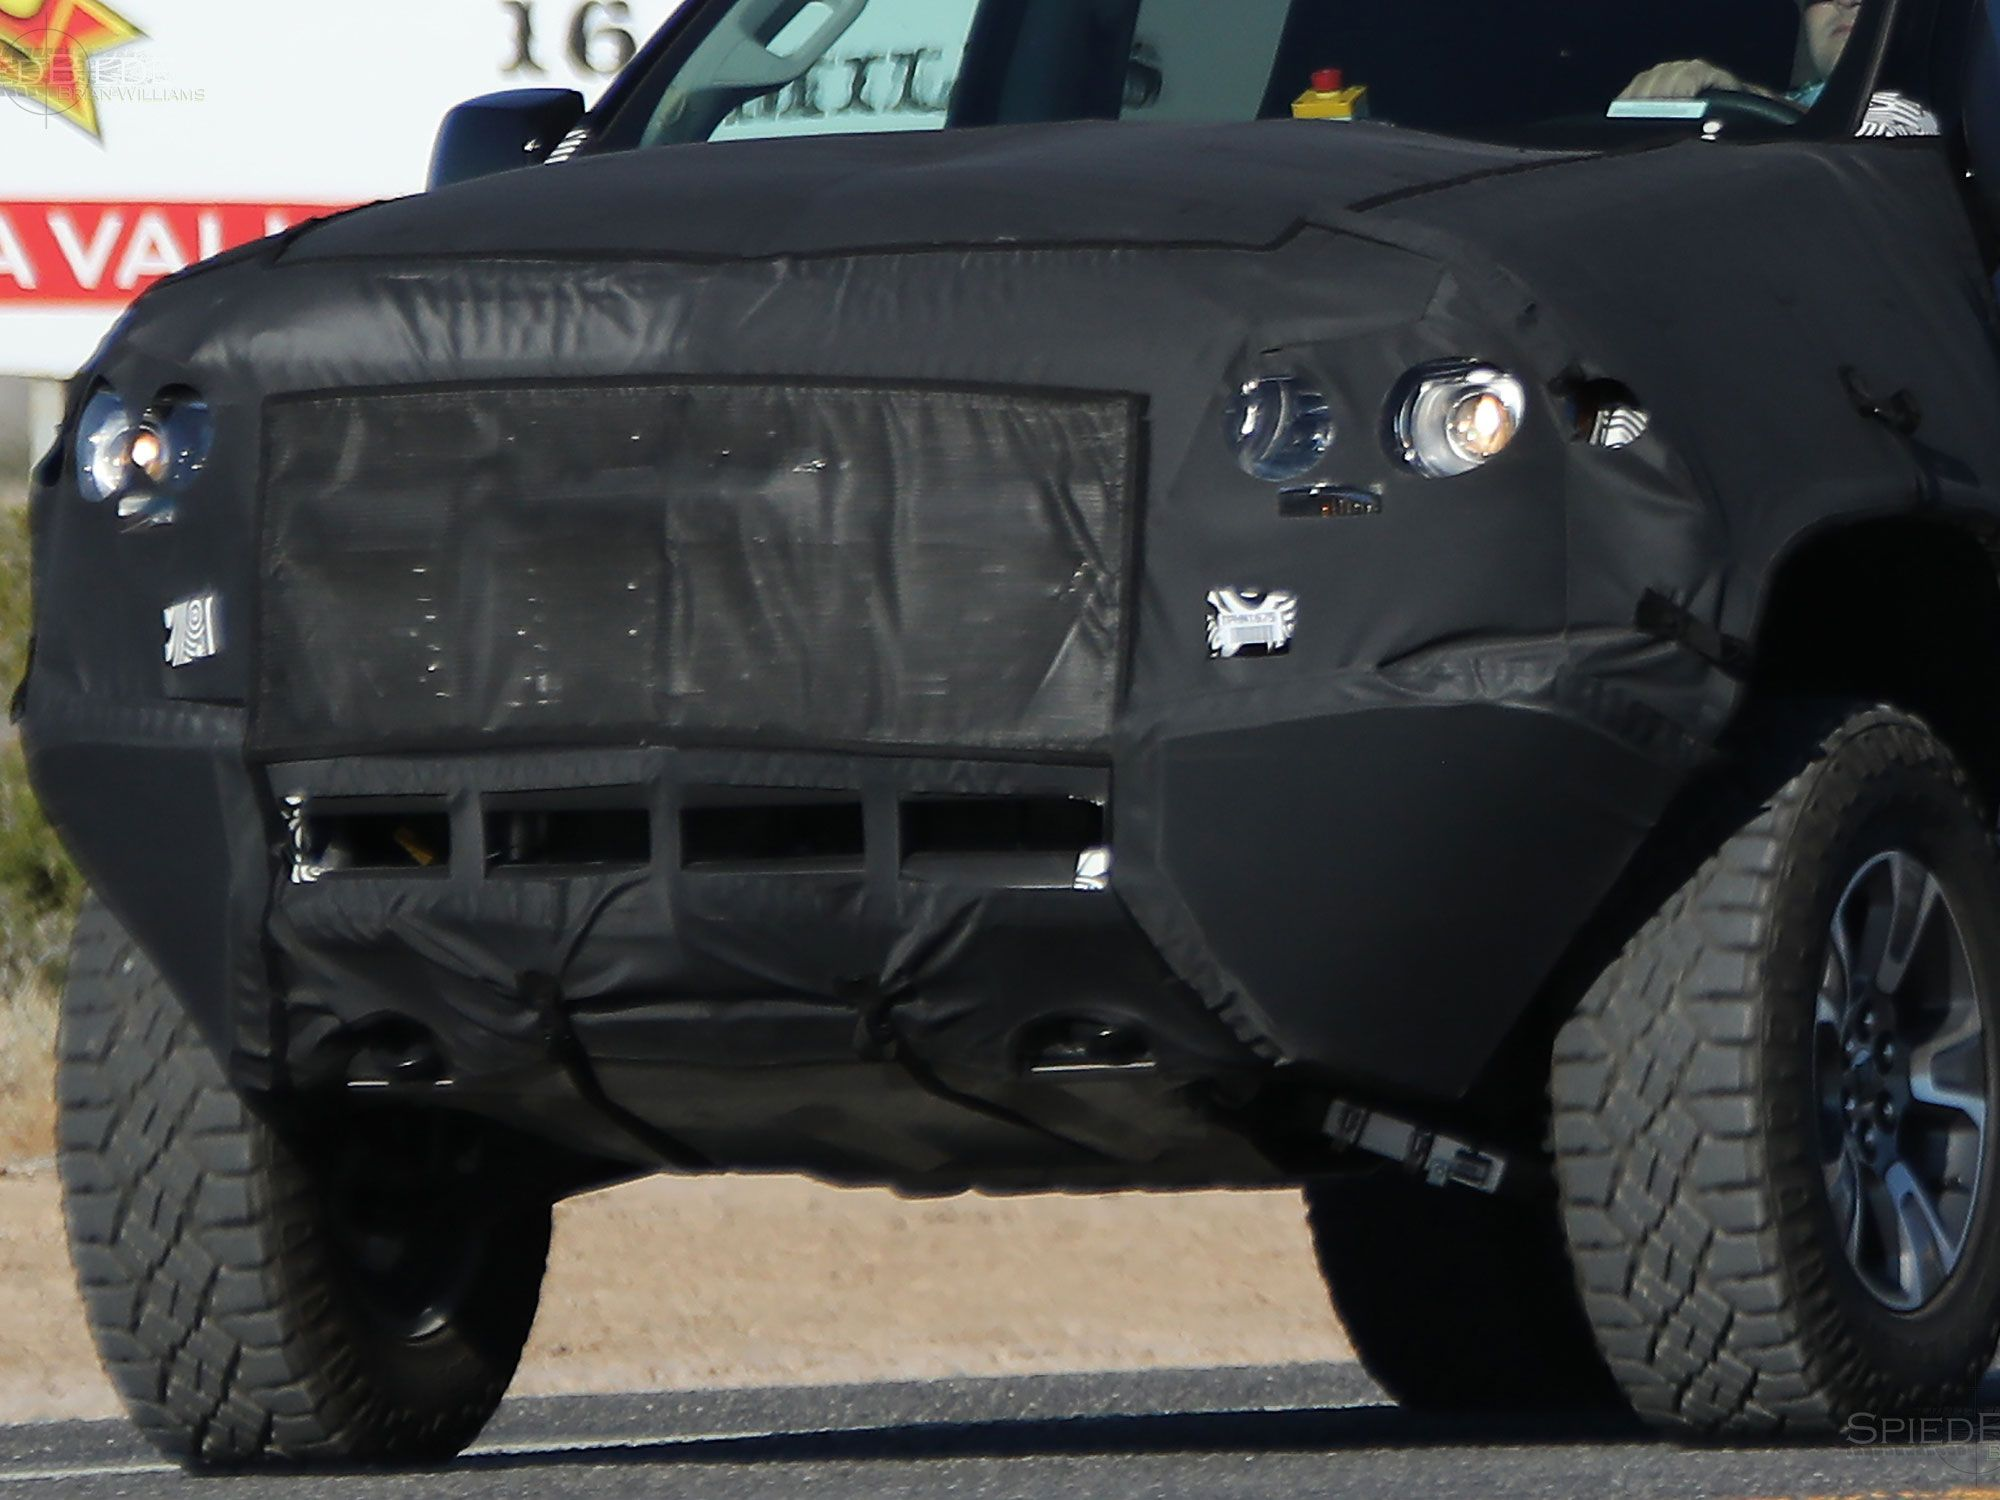 The 2017 Chevy Colorado ZR2 Spied Could This Be A Potential Raptor